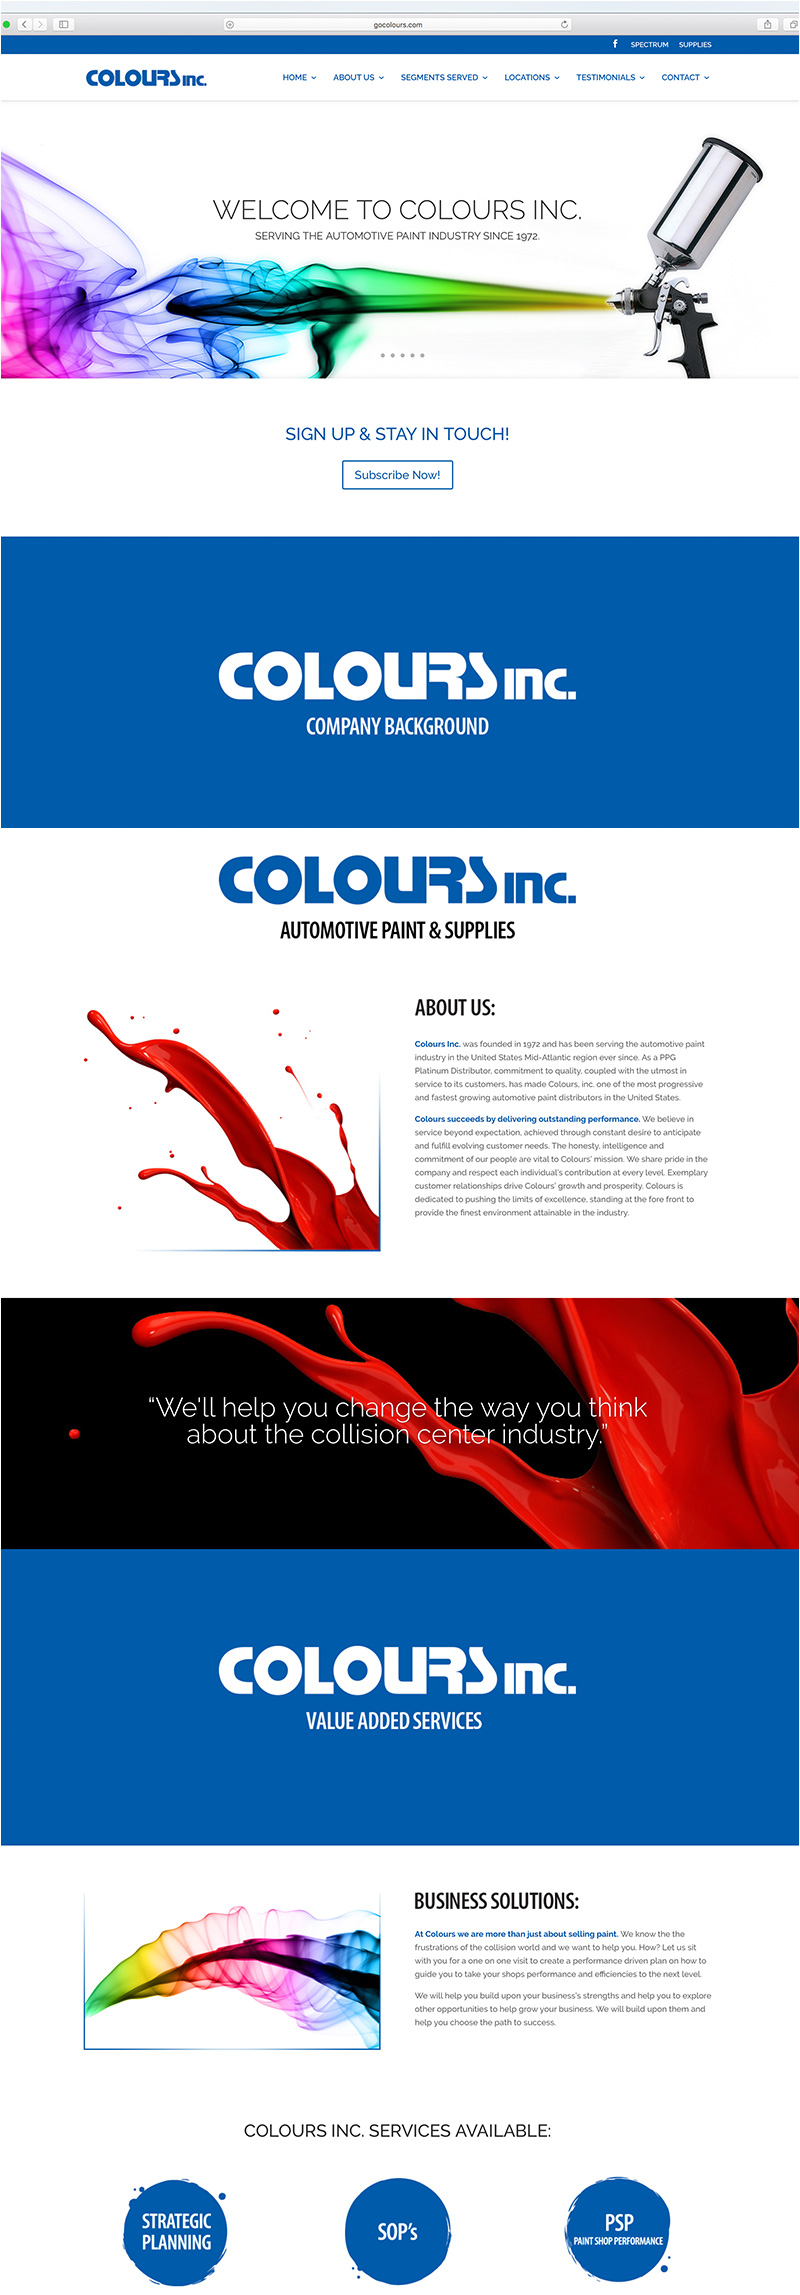 Colours, Inc. Automotive Paint & Supplies website